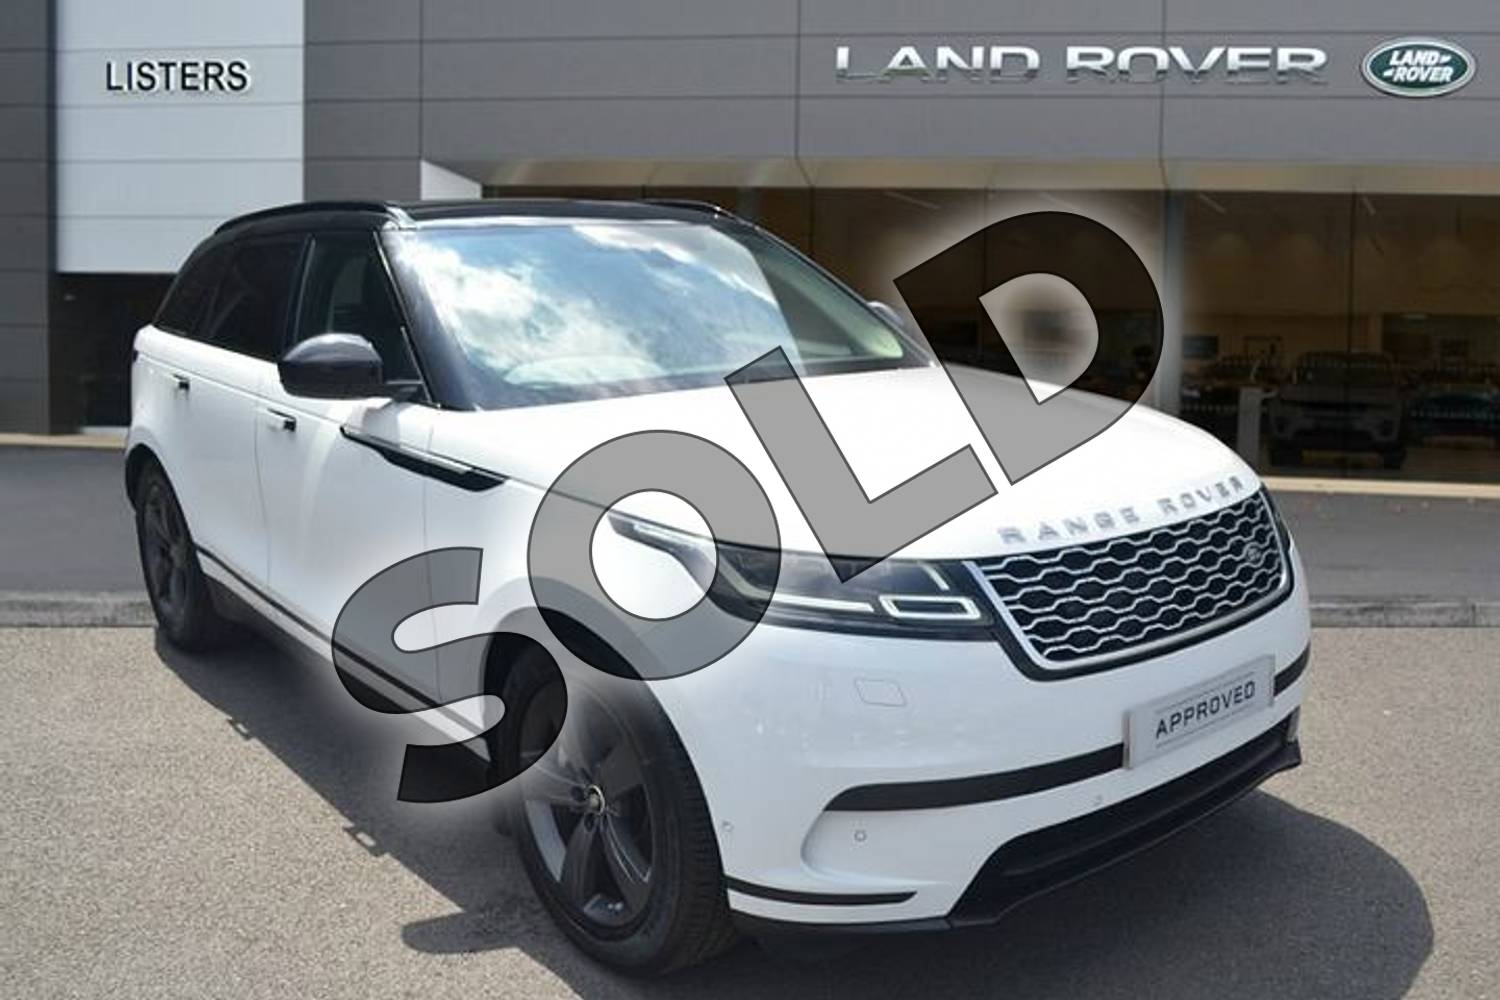 2019 Range Rover Velar Diesel Estate 3.0 D275 SE 5dr Auto in Fuji White at Listers Land Rover Hereford